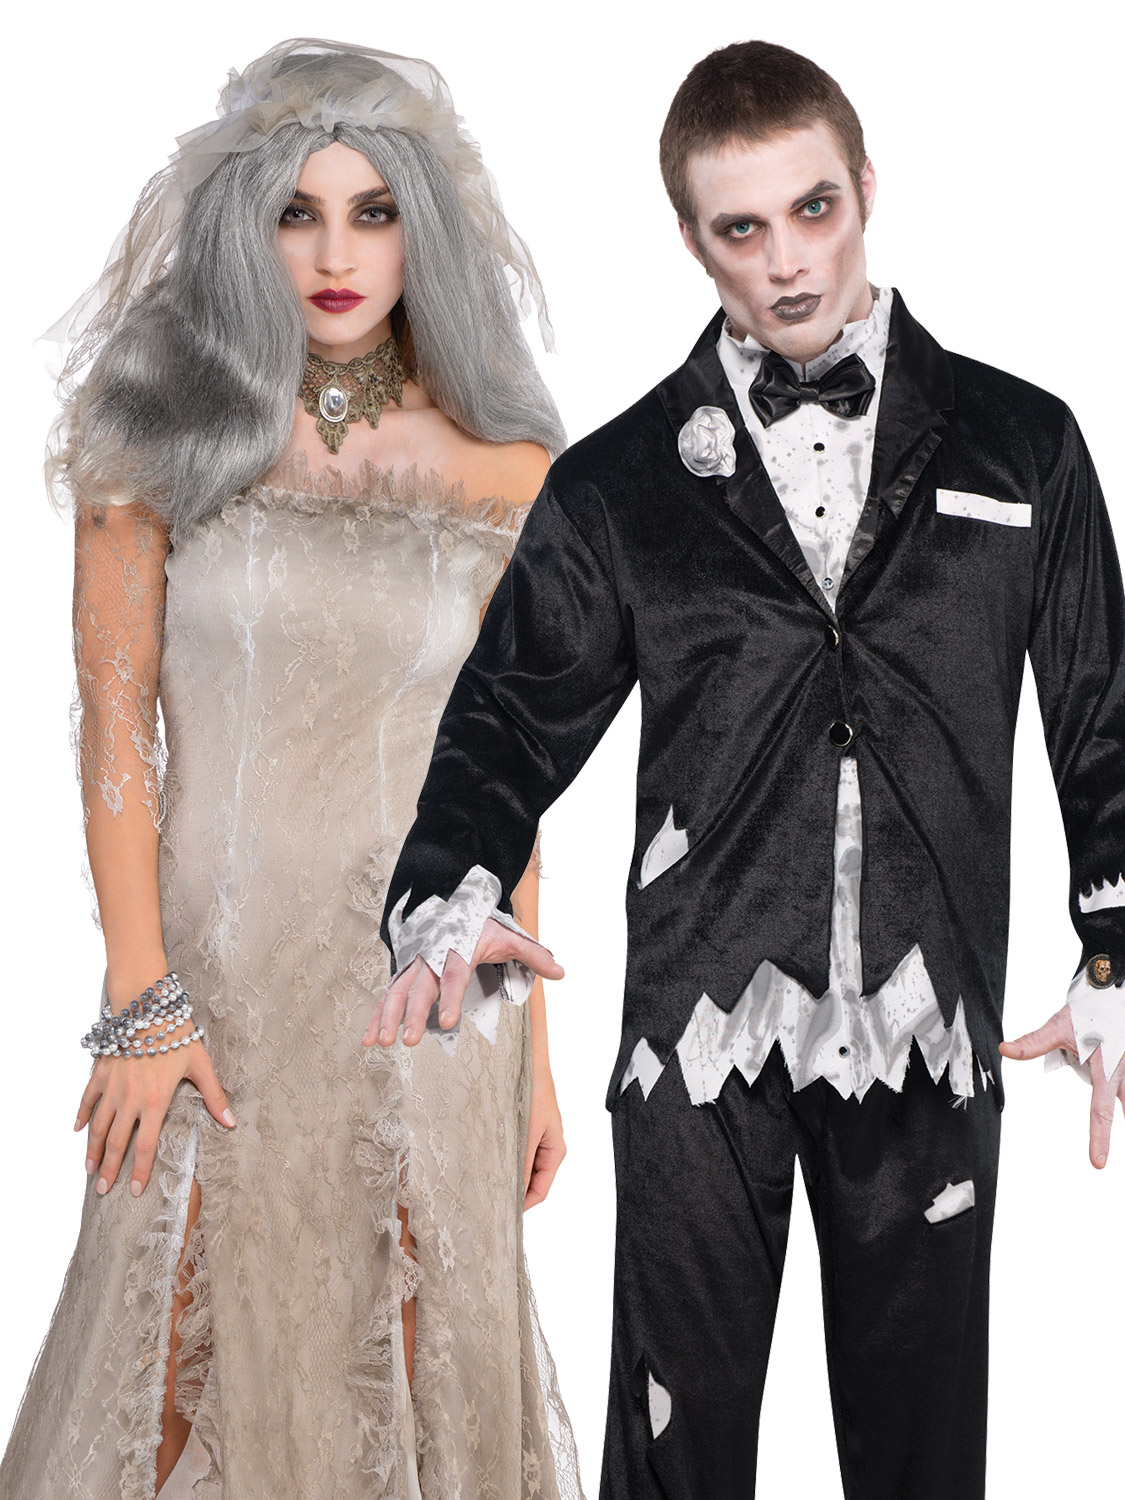 5c45bb20448 Details about Ladies Mens Corpse Bride and Zombie Groom Halloween Fancy  Dress Costume Couples